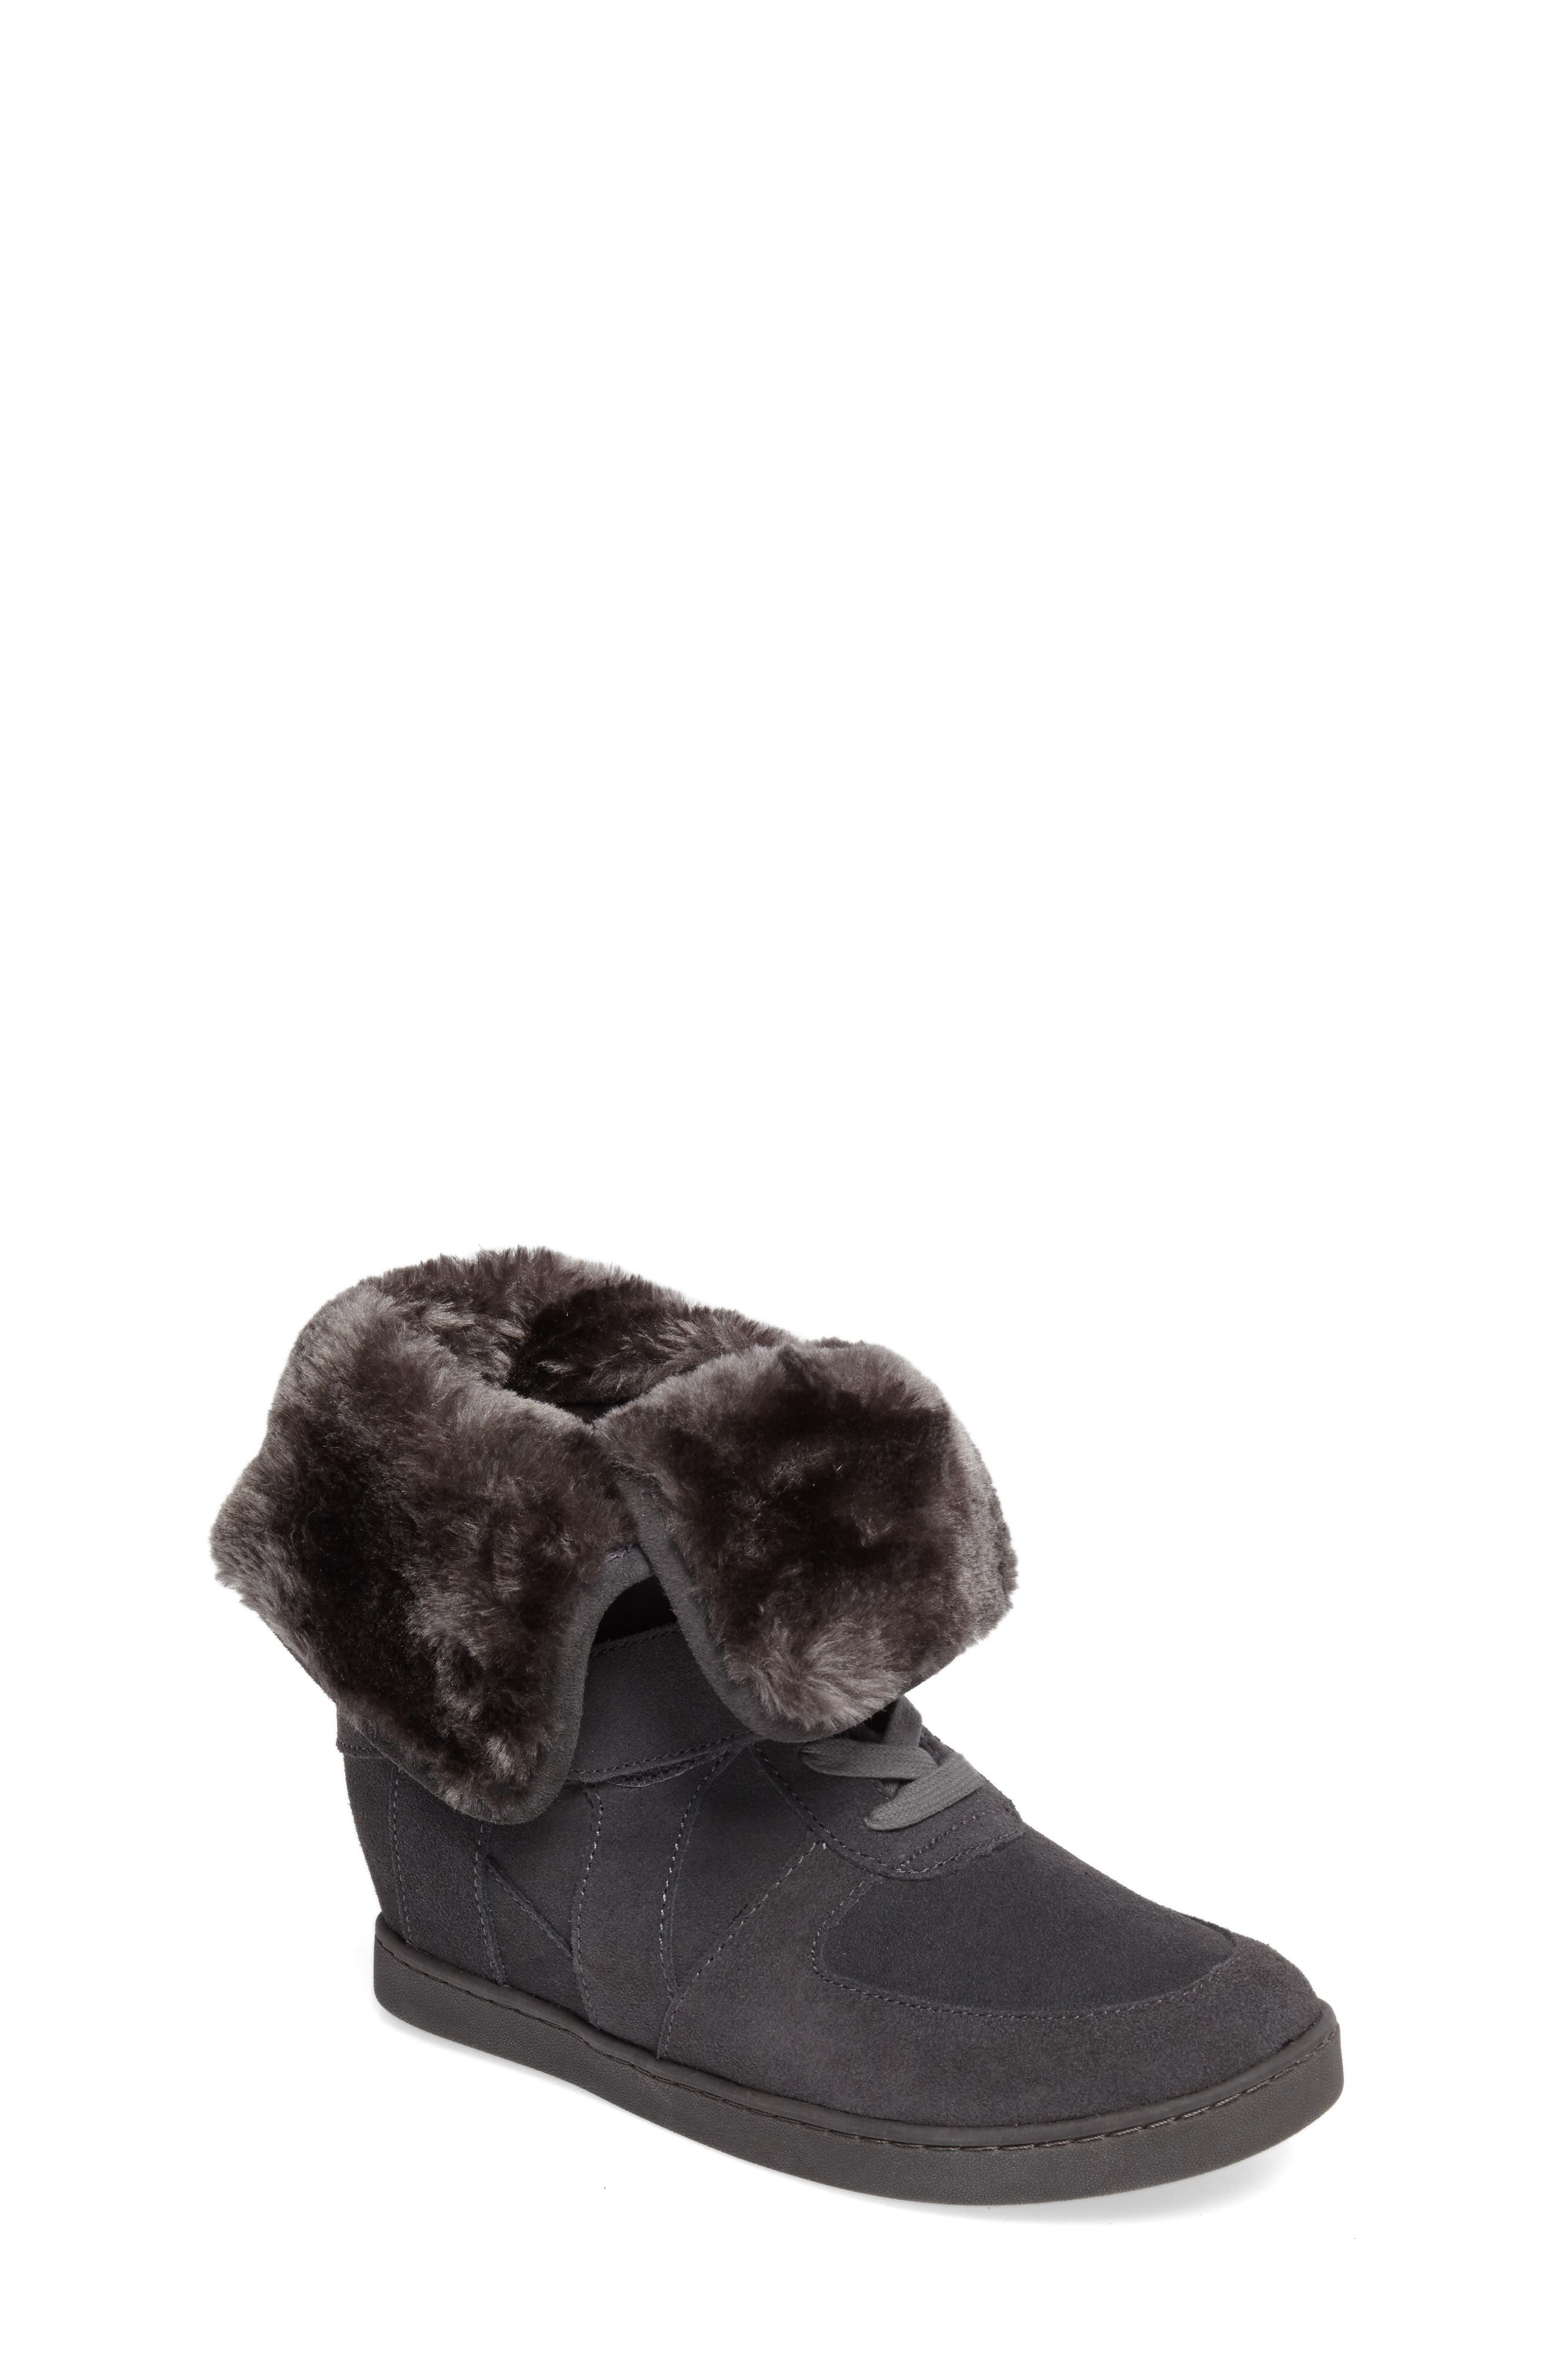 Boogie Beaver Faux Fur Cuffed Bootie,                         Main,                         color, 052